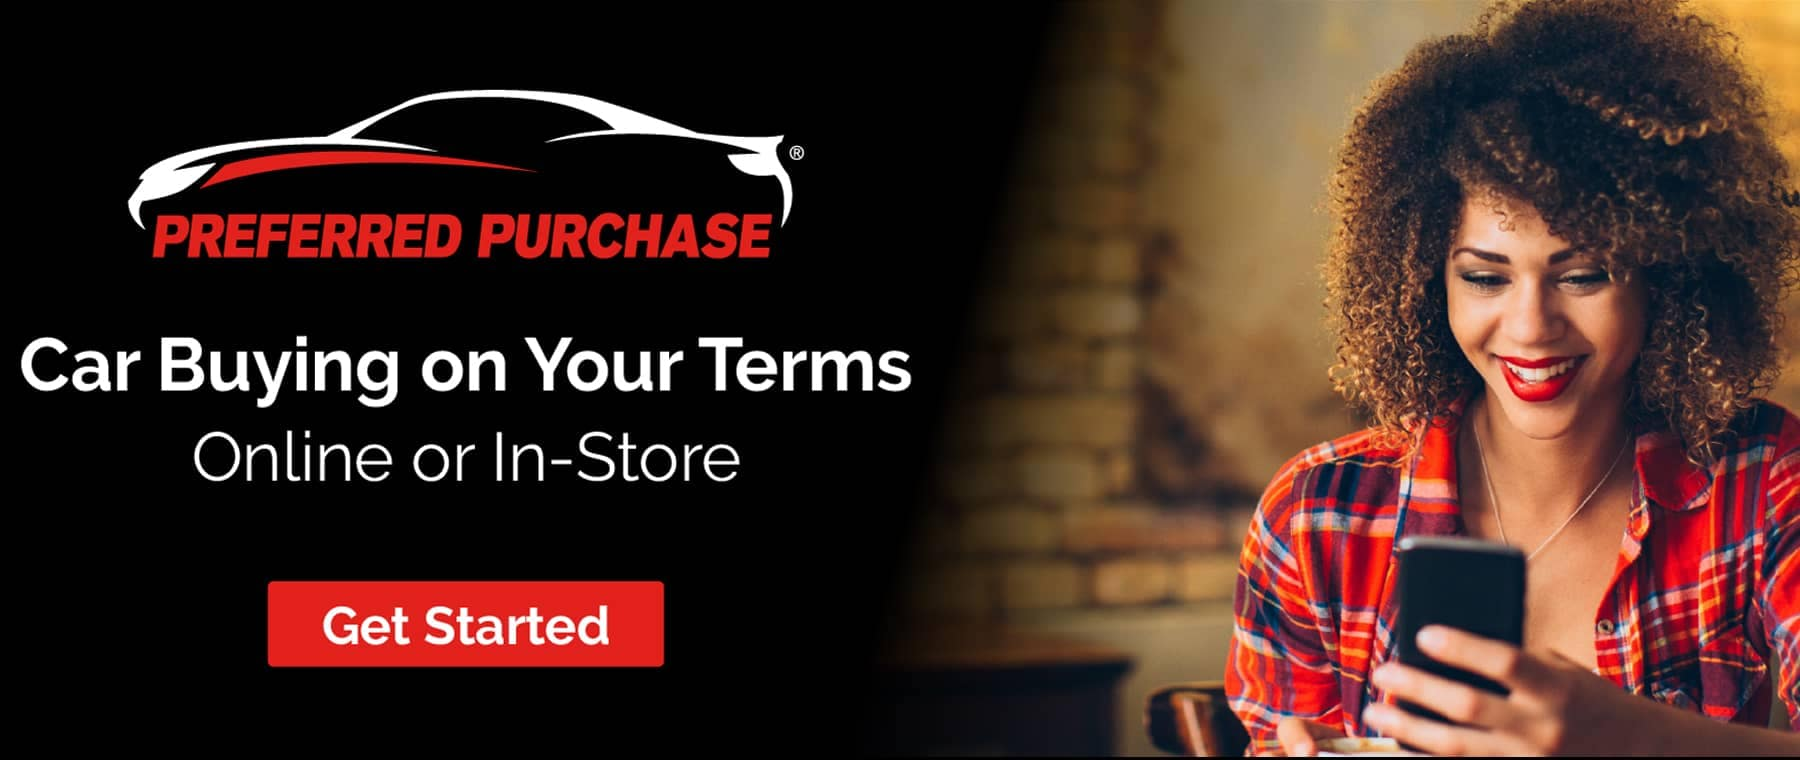 preferred purchase banner with woman using cell phone